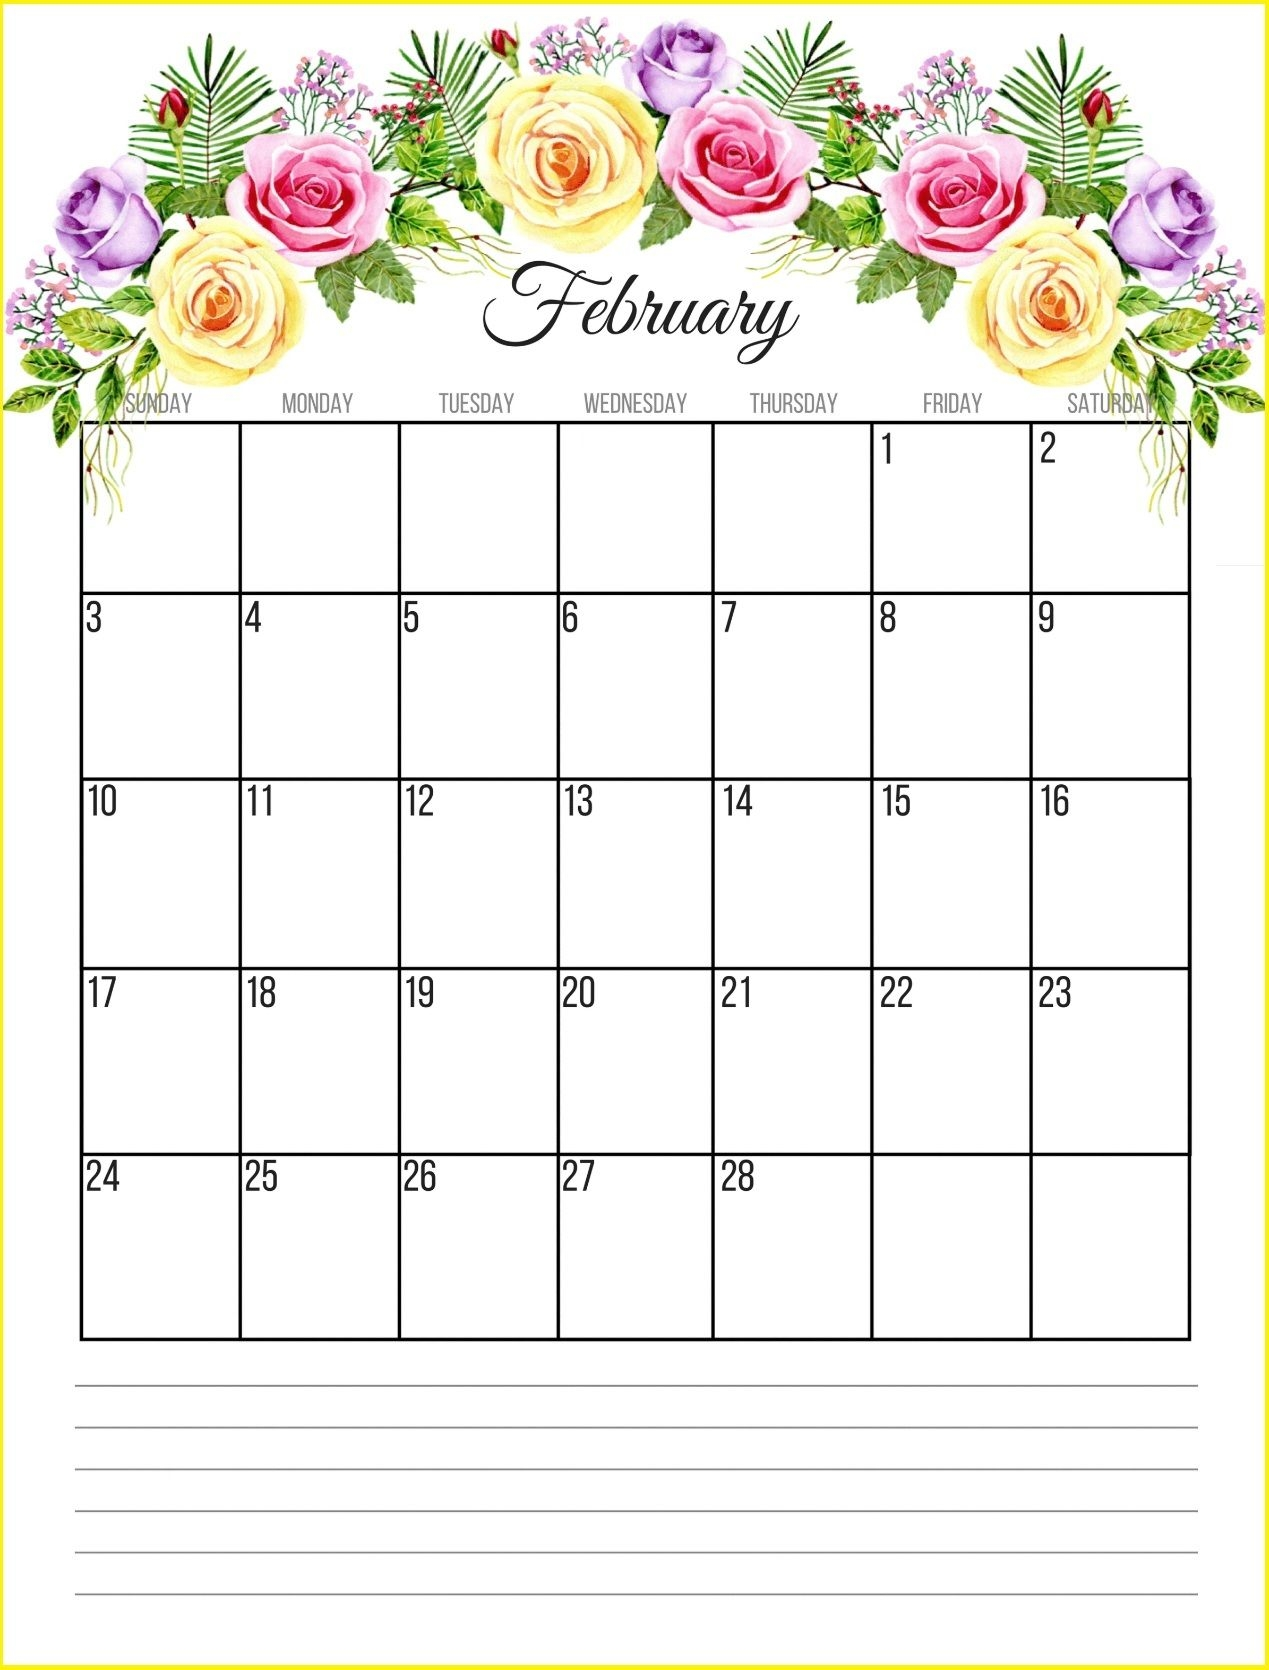 template editable download free ::February 2019 Calendar Excel